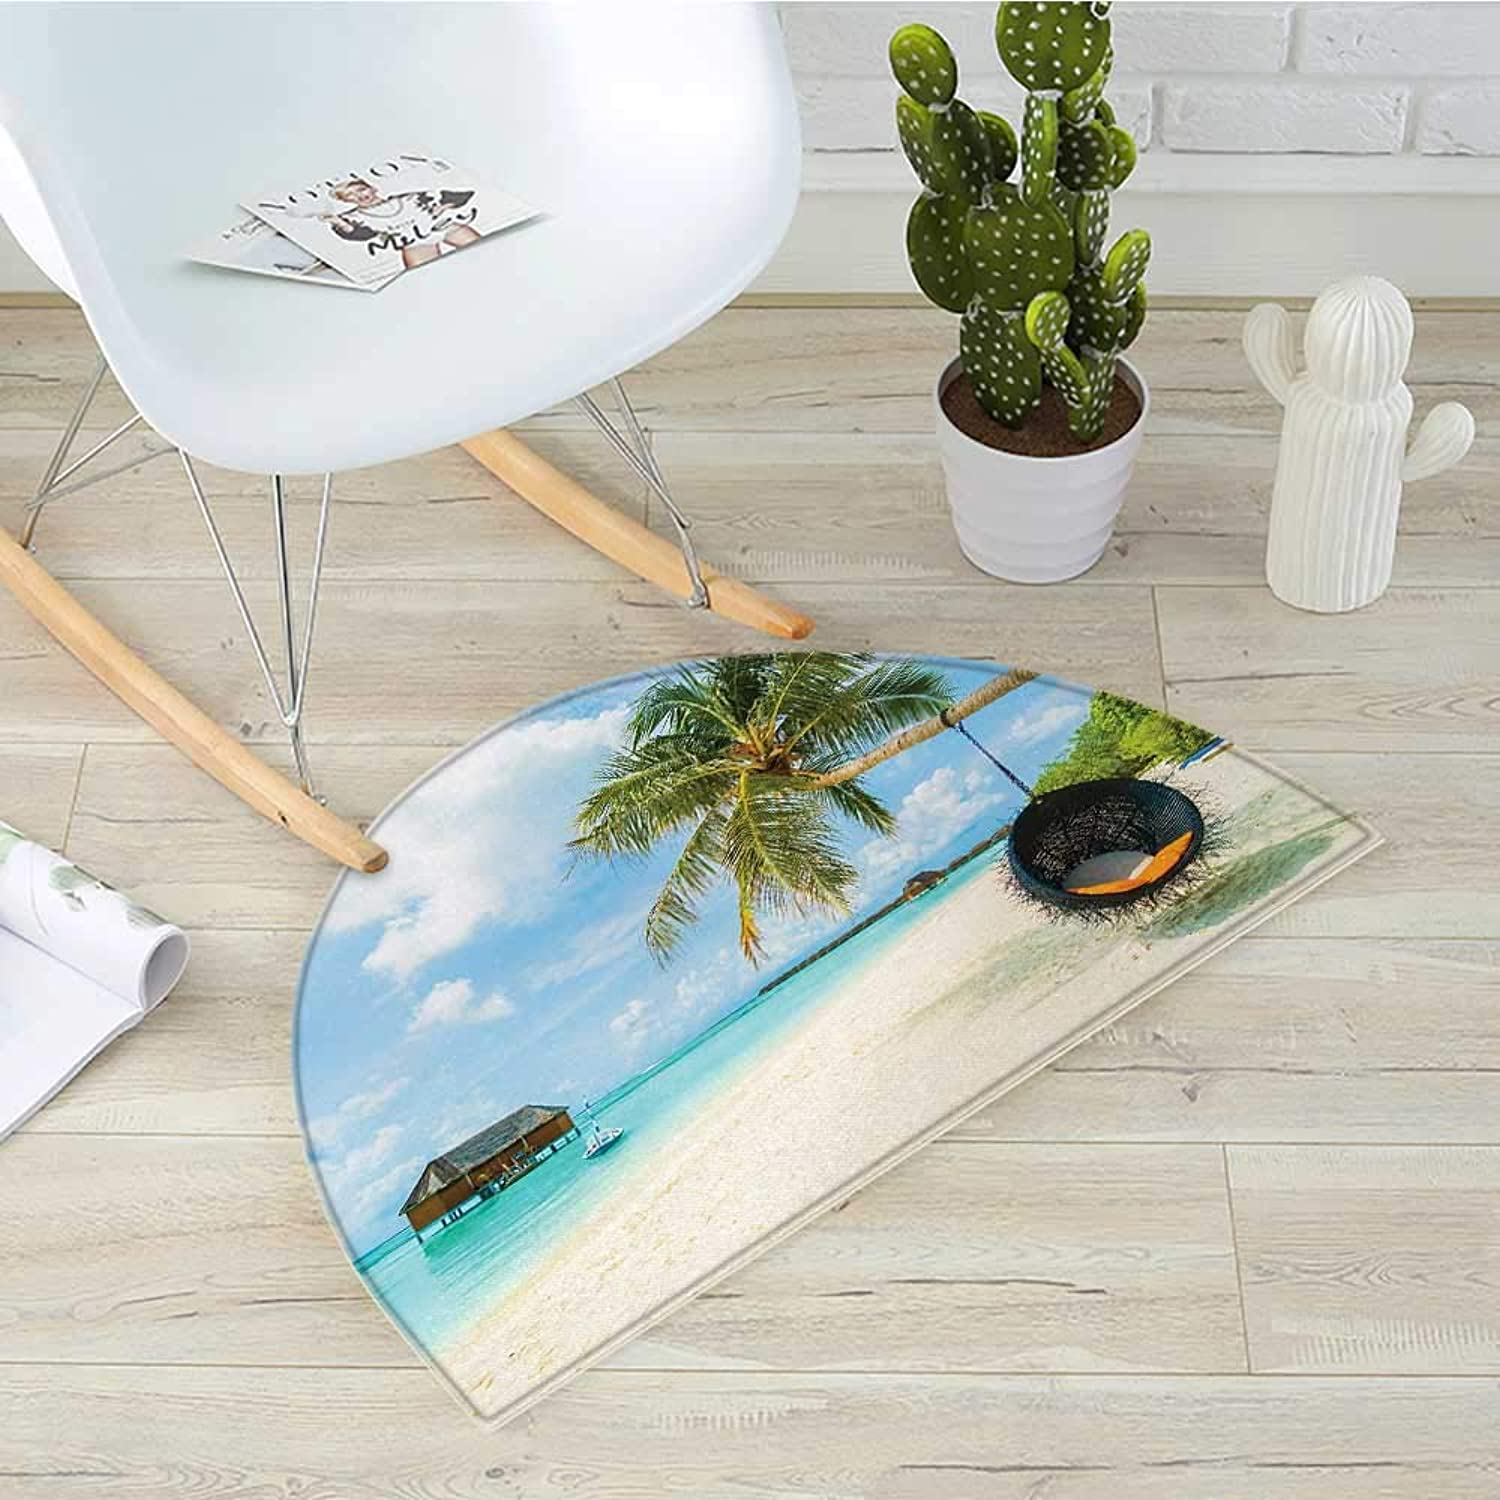 Ocean Semicircular CushionExotic Beach in The Maldives with Crystal Waters and Palm Trees on The Sand Tropical Decor Entry Door Mat H 39.3  xD 59  Multi